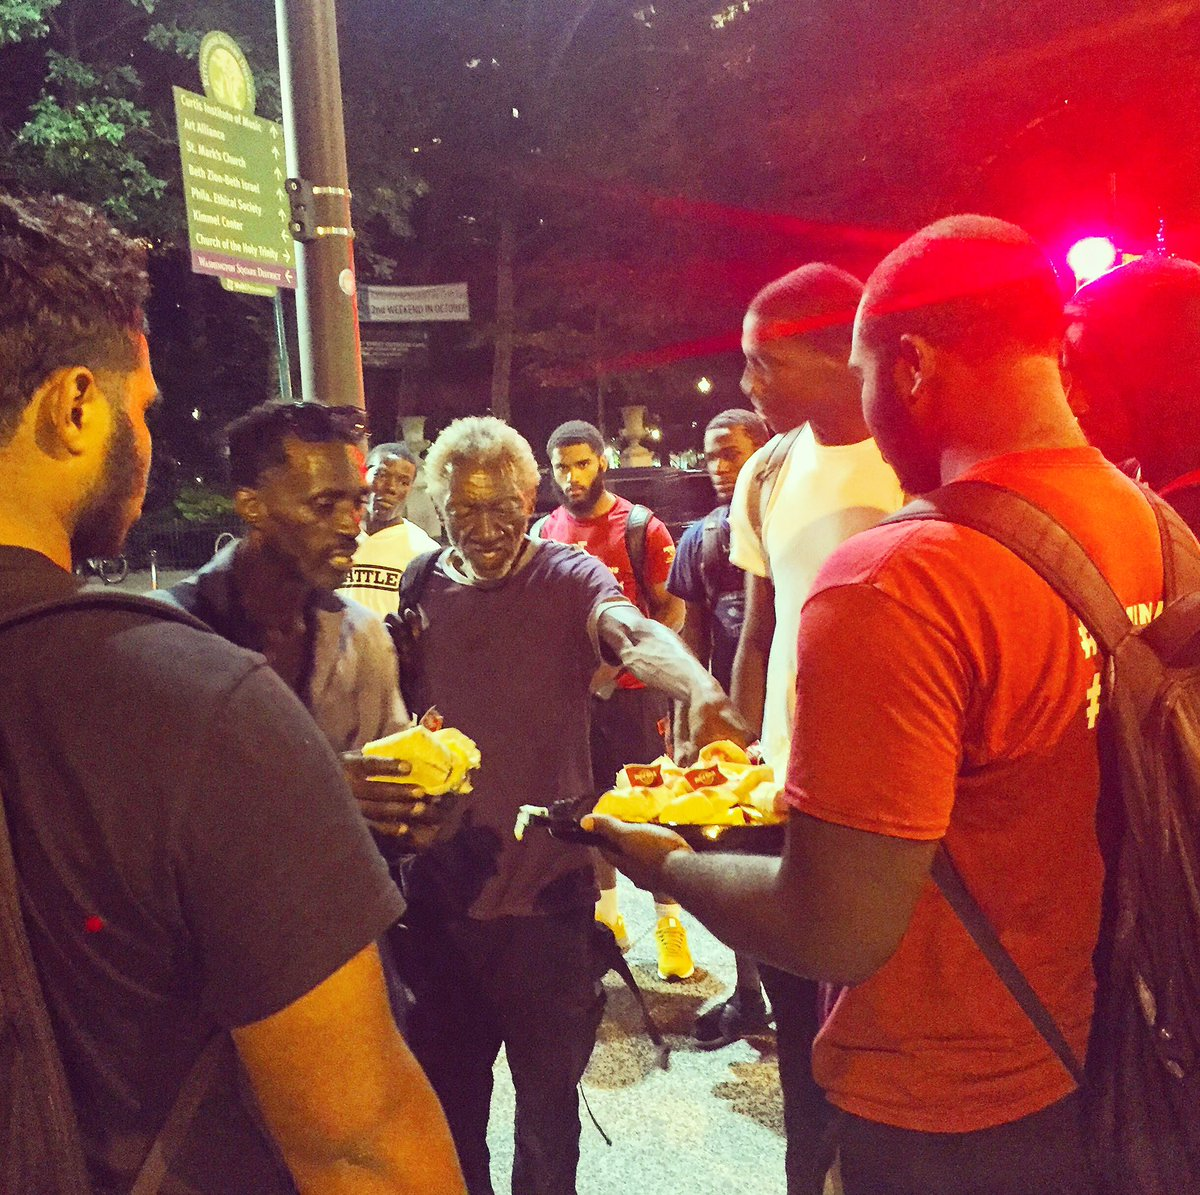 Instead of throwing out leftover sandwiches, the boys decided to hand them out to Philadelphians in need. @FocusedAth_215  @PhillyMayor